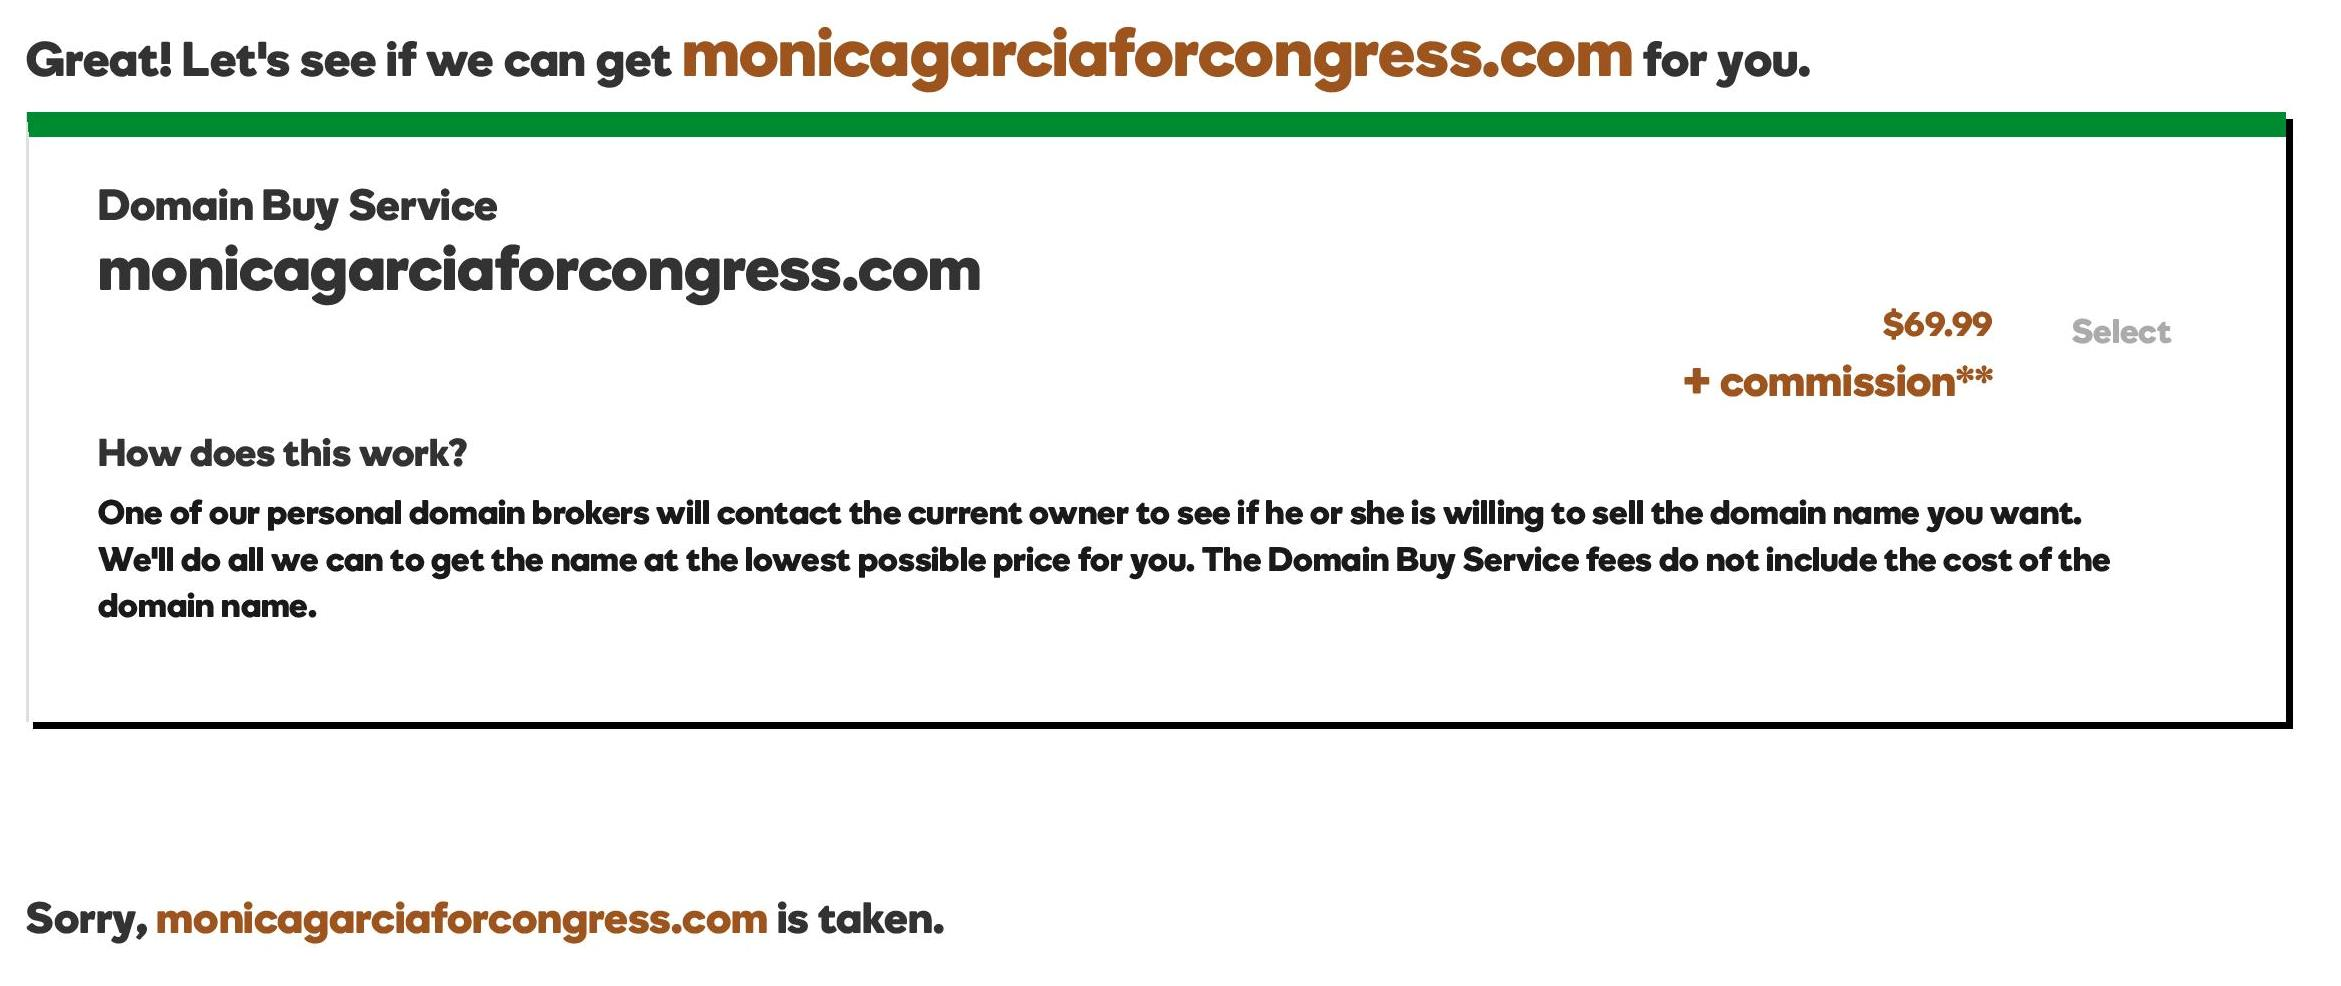 Monica_Garcia_for_Congress.jpg